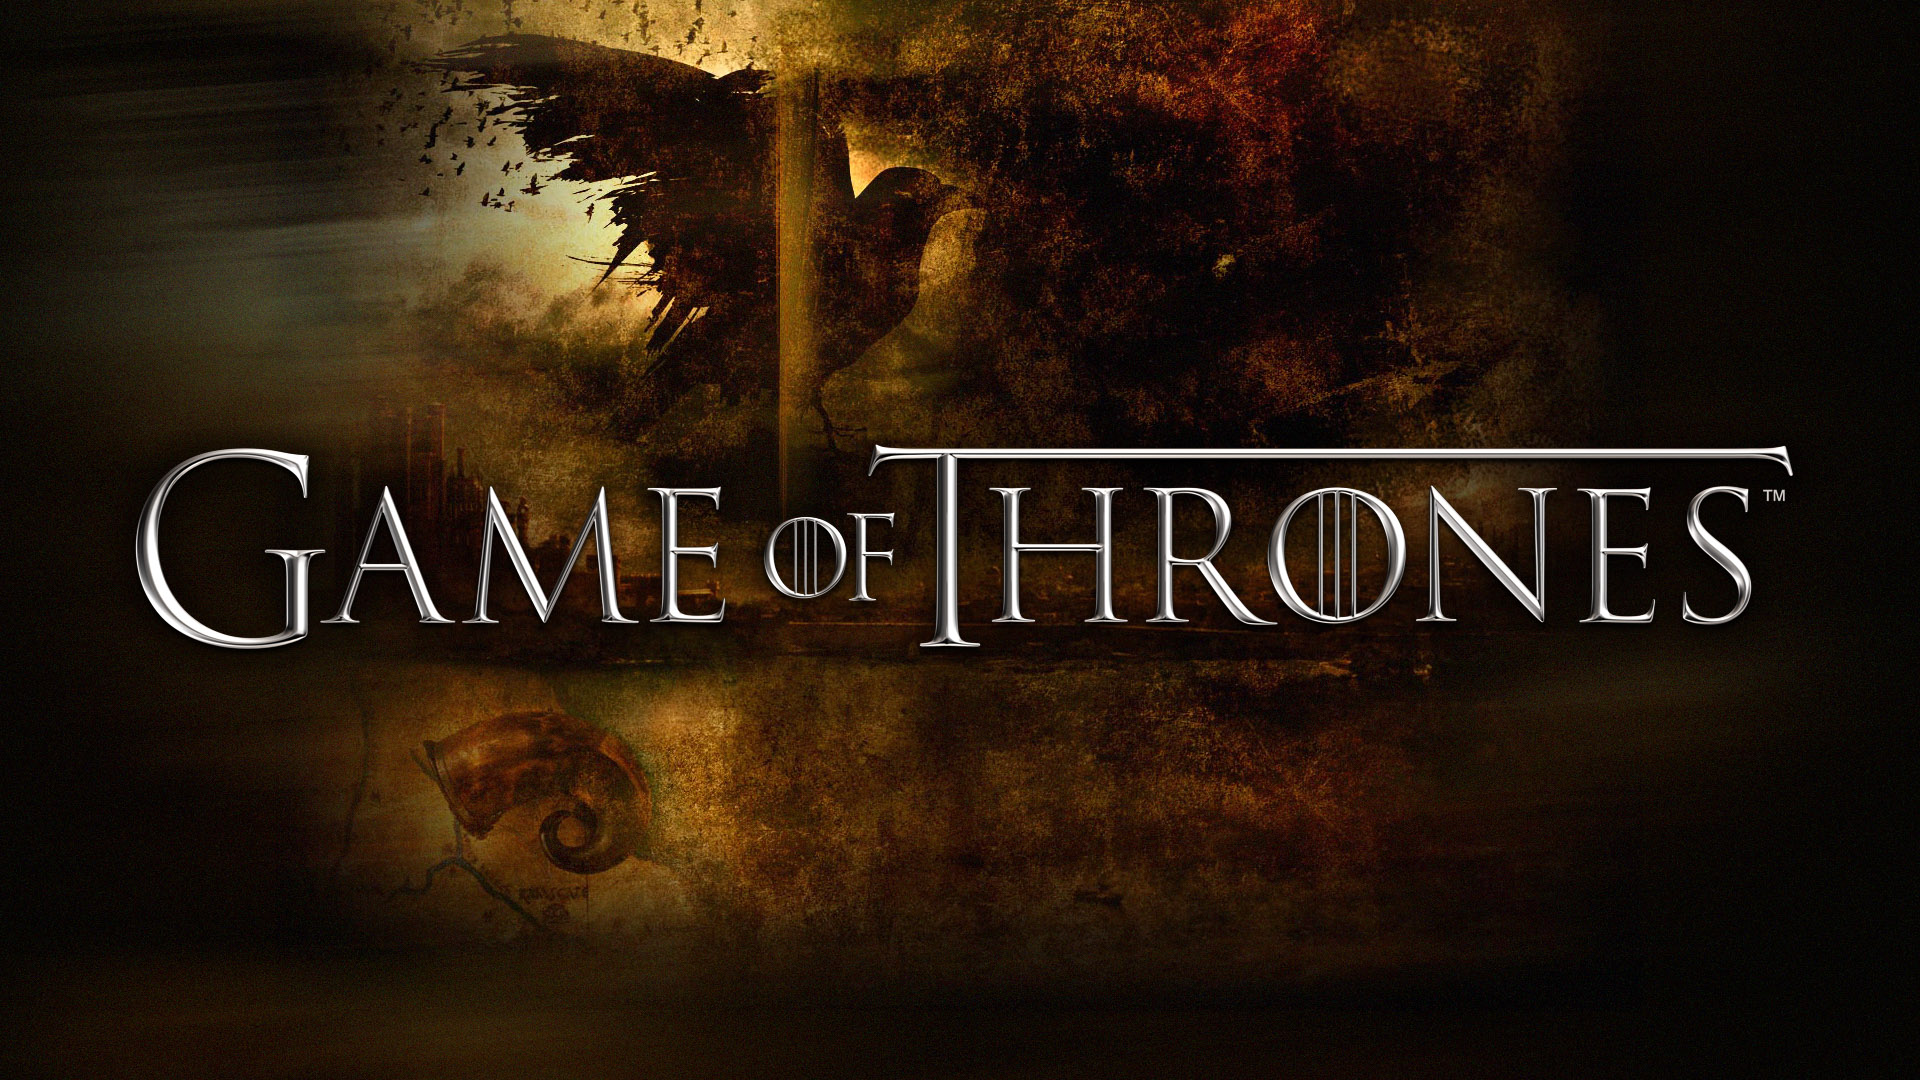 Game of Thrones Season 5 Wallpaper Download Desktop Wallpaper 1920x1080